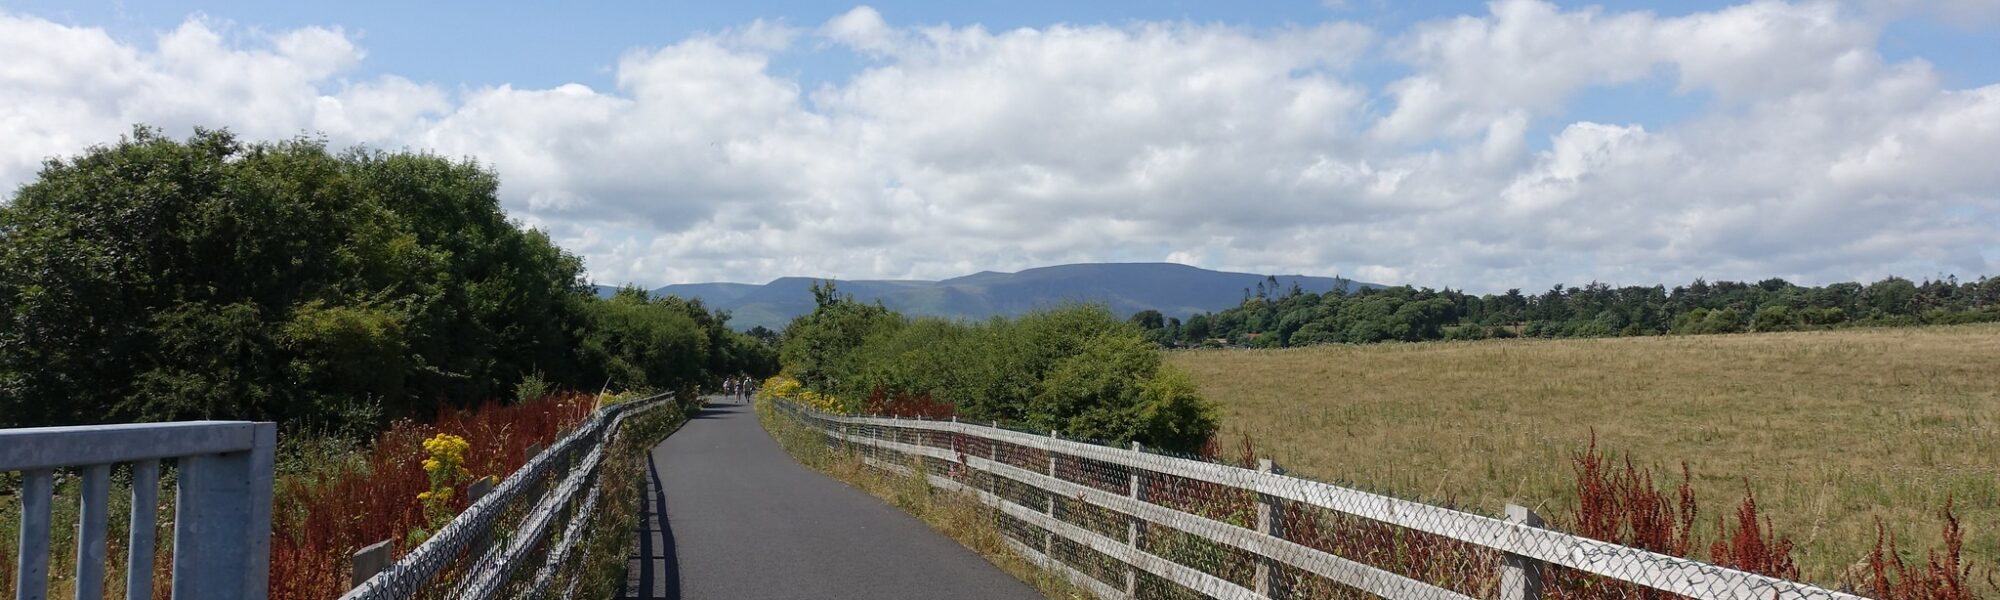 Waterford Greenway - moz278 - cc